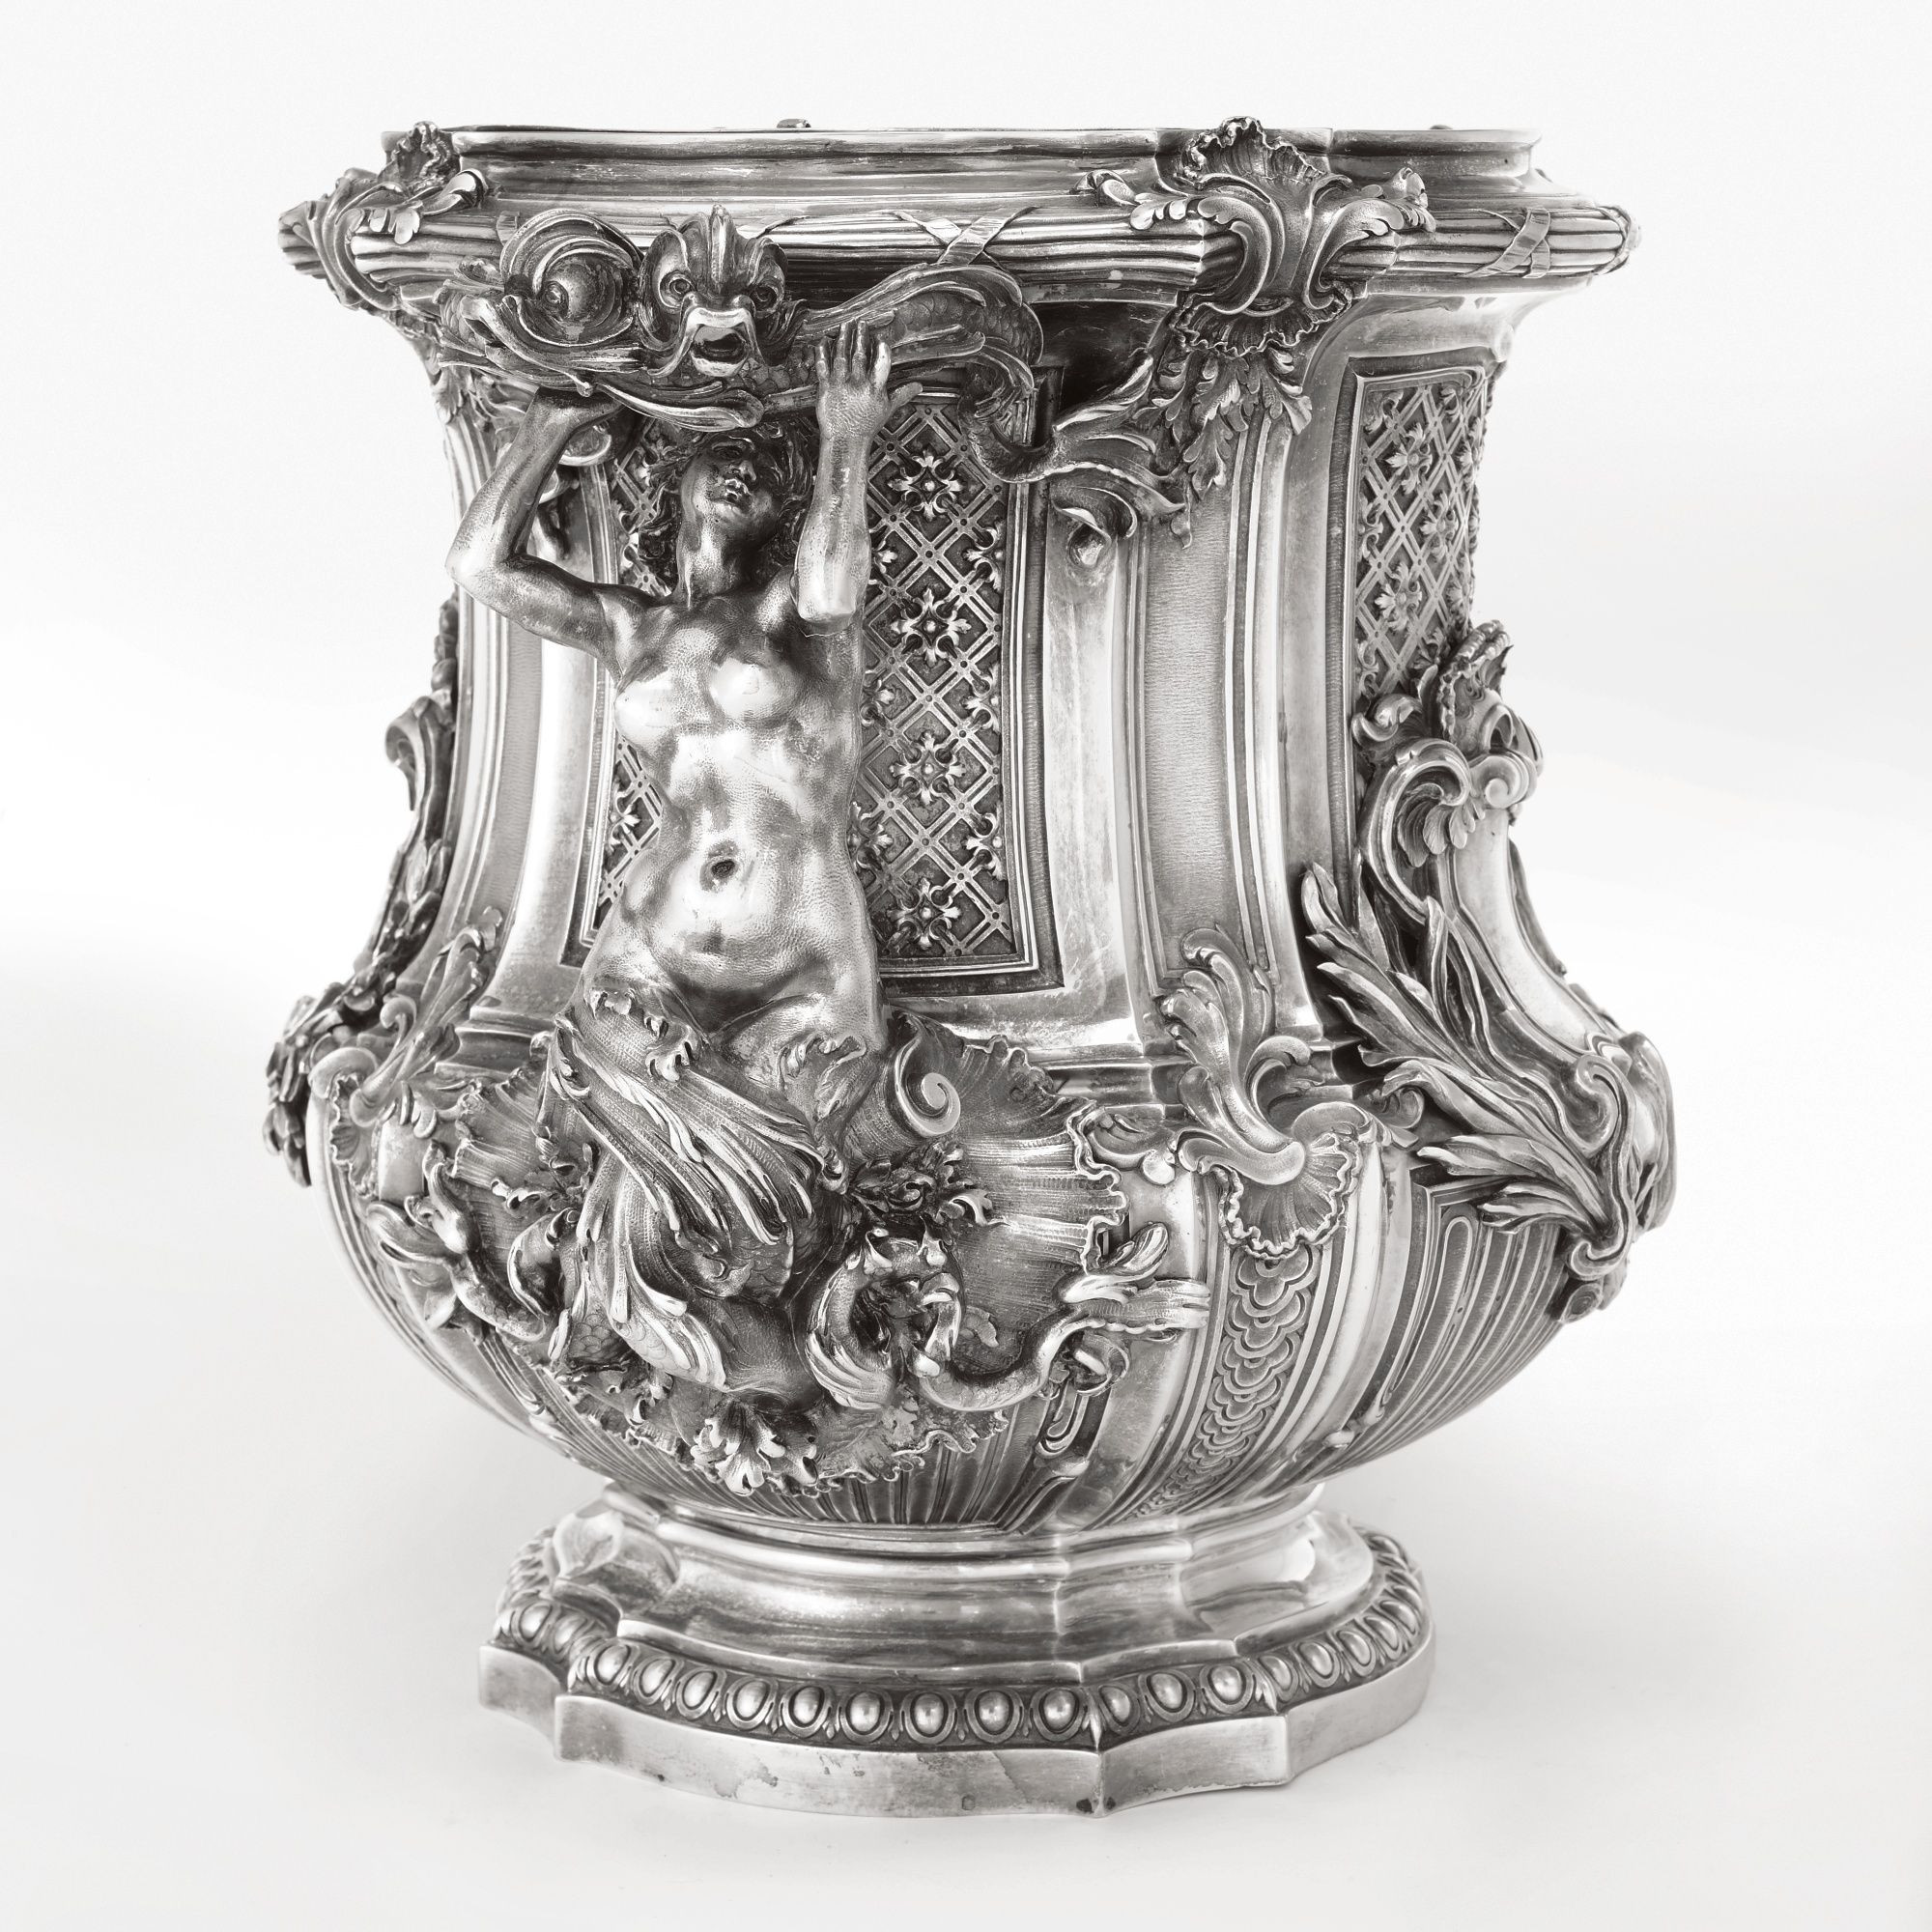 silver bowl vase of silver sothebys n08743lot5yj79en silver centerpiece pinterest regarding silver sothebys n08743lot5yj79en